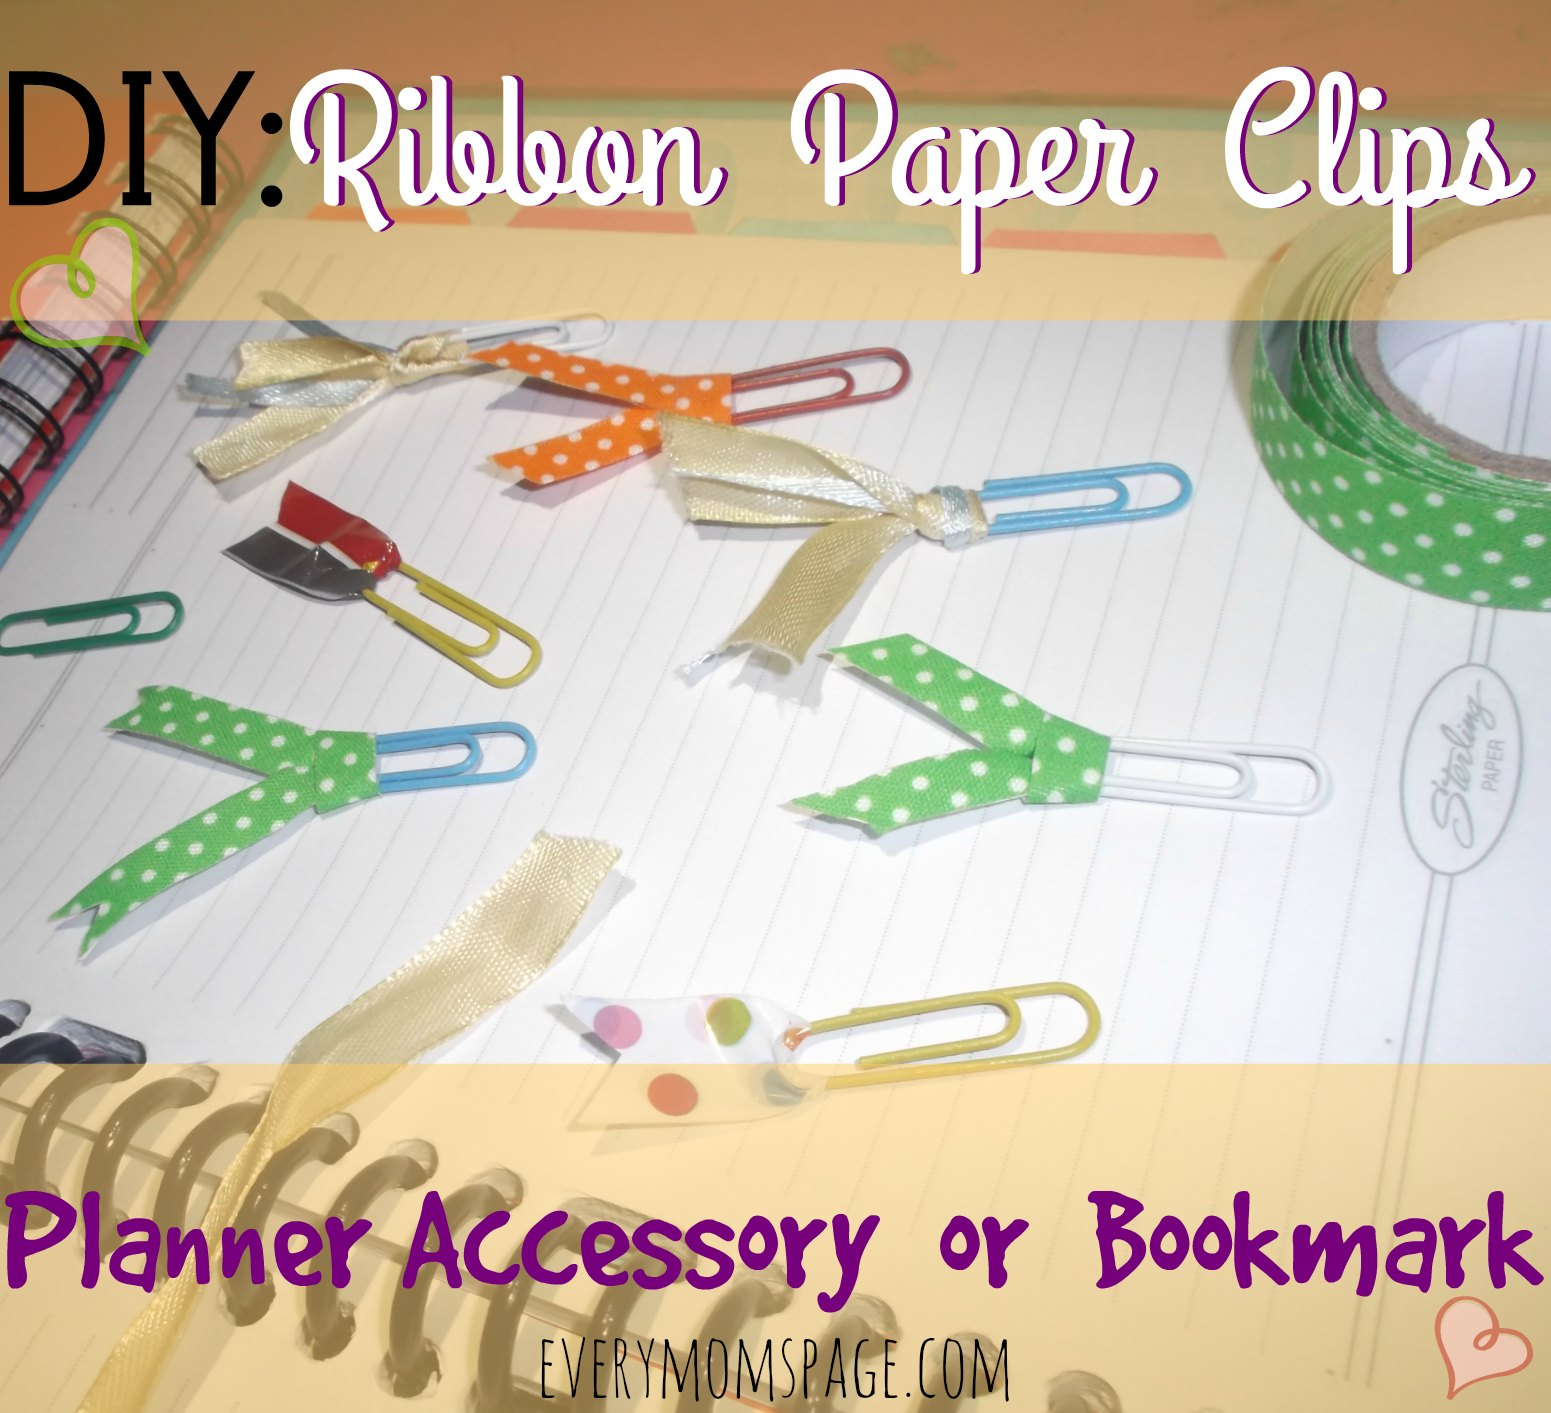 DIY: Ribbon Paper Clips